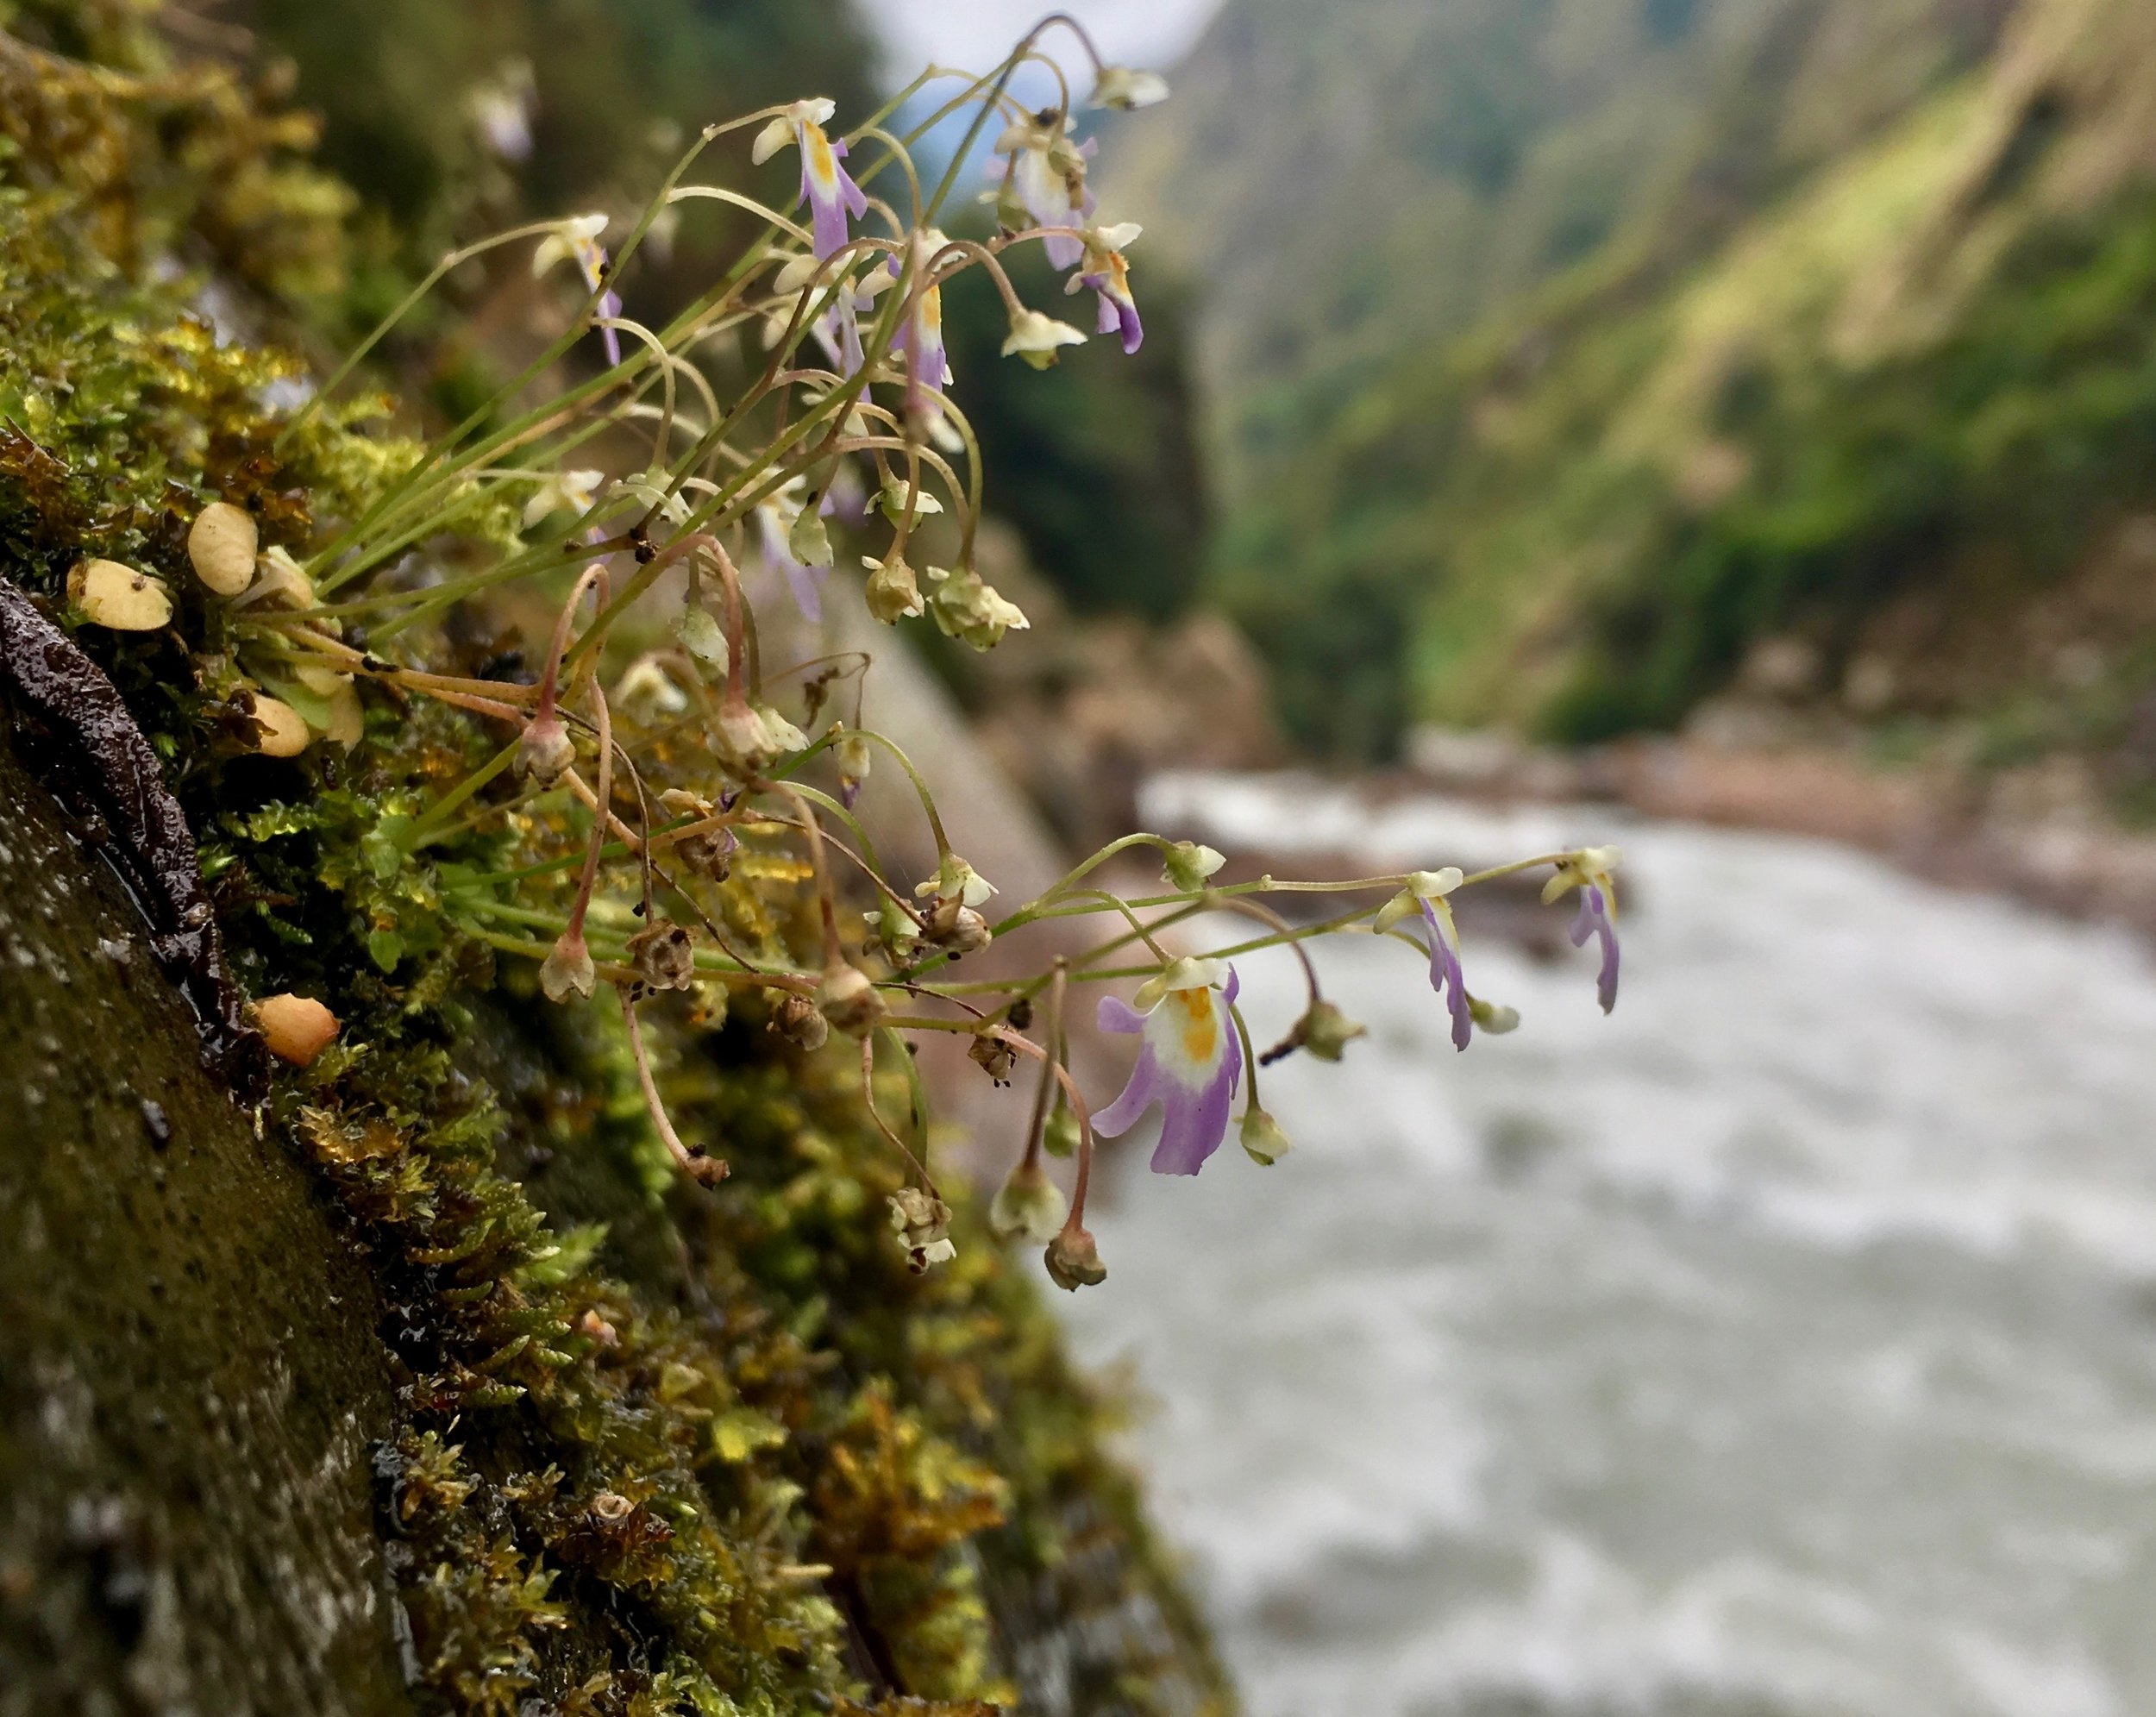 Plants cling to the gorge walls too – here is a  Utricularia  species,which is used to treat wounds.